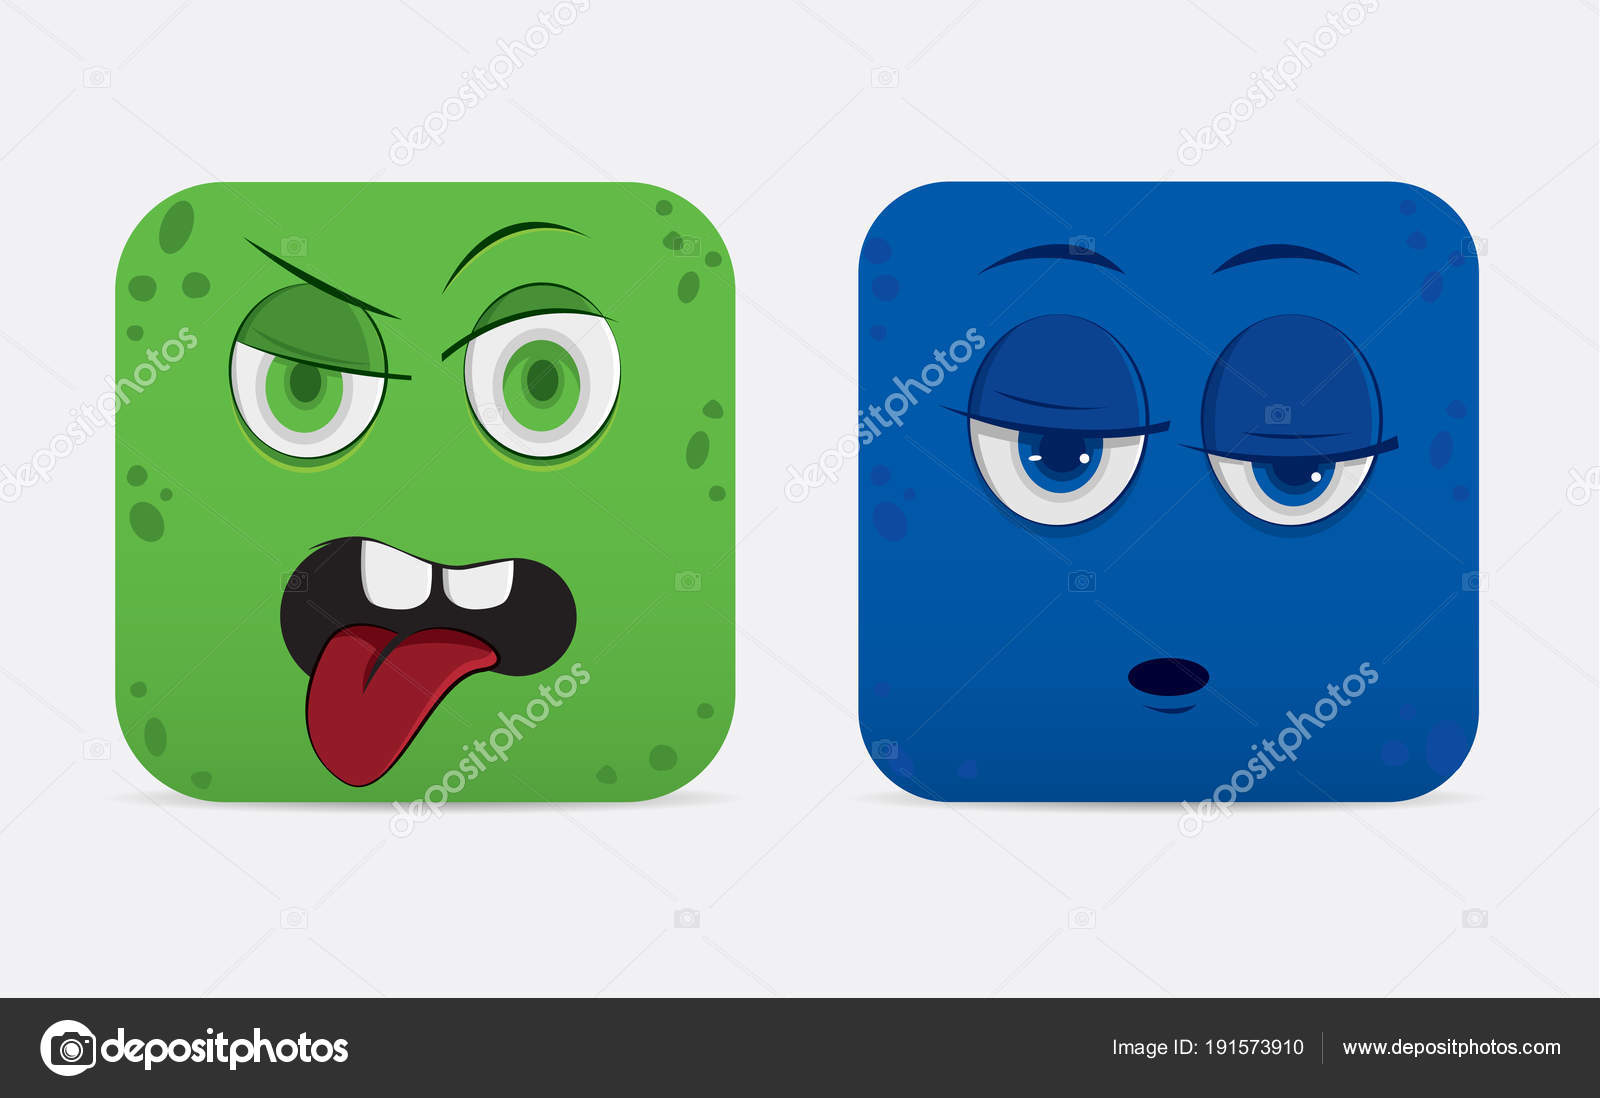 Funny cartoon monster faces — Stock Vector © tinashin #191573910